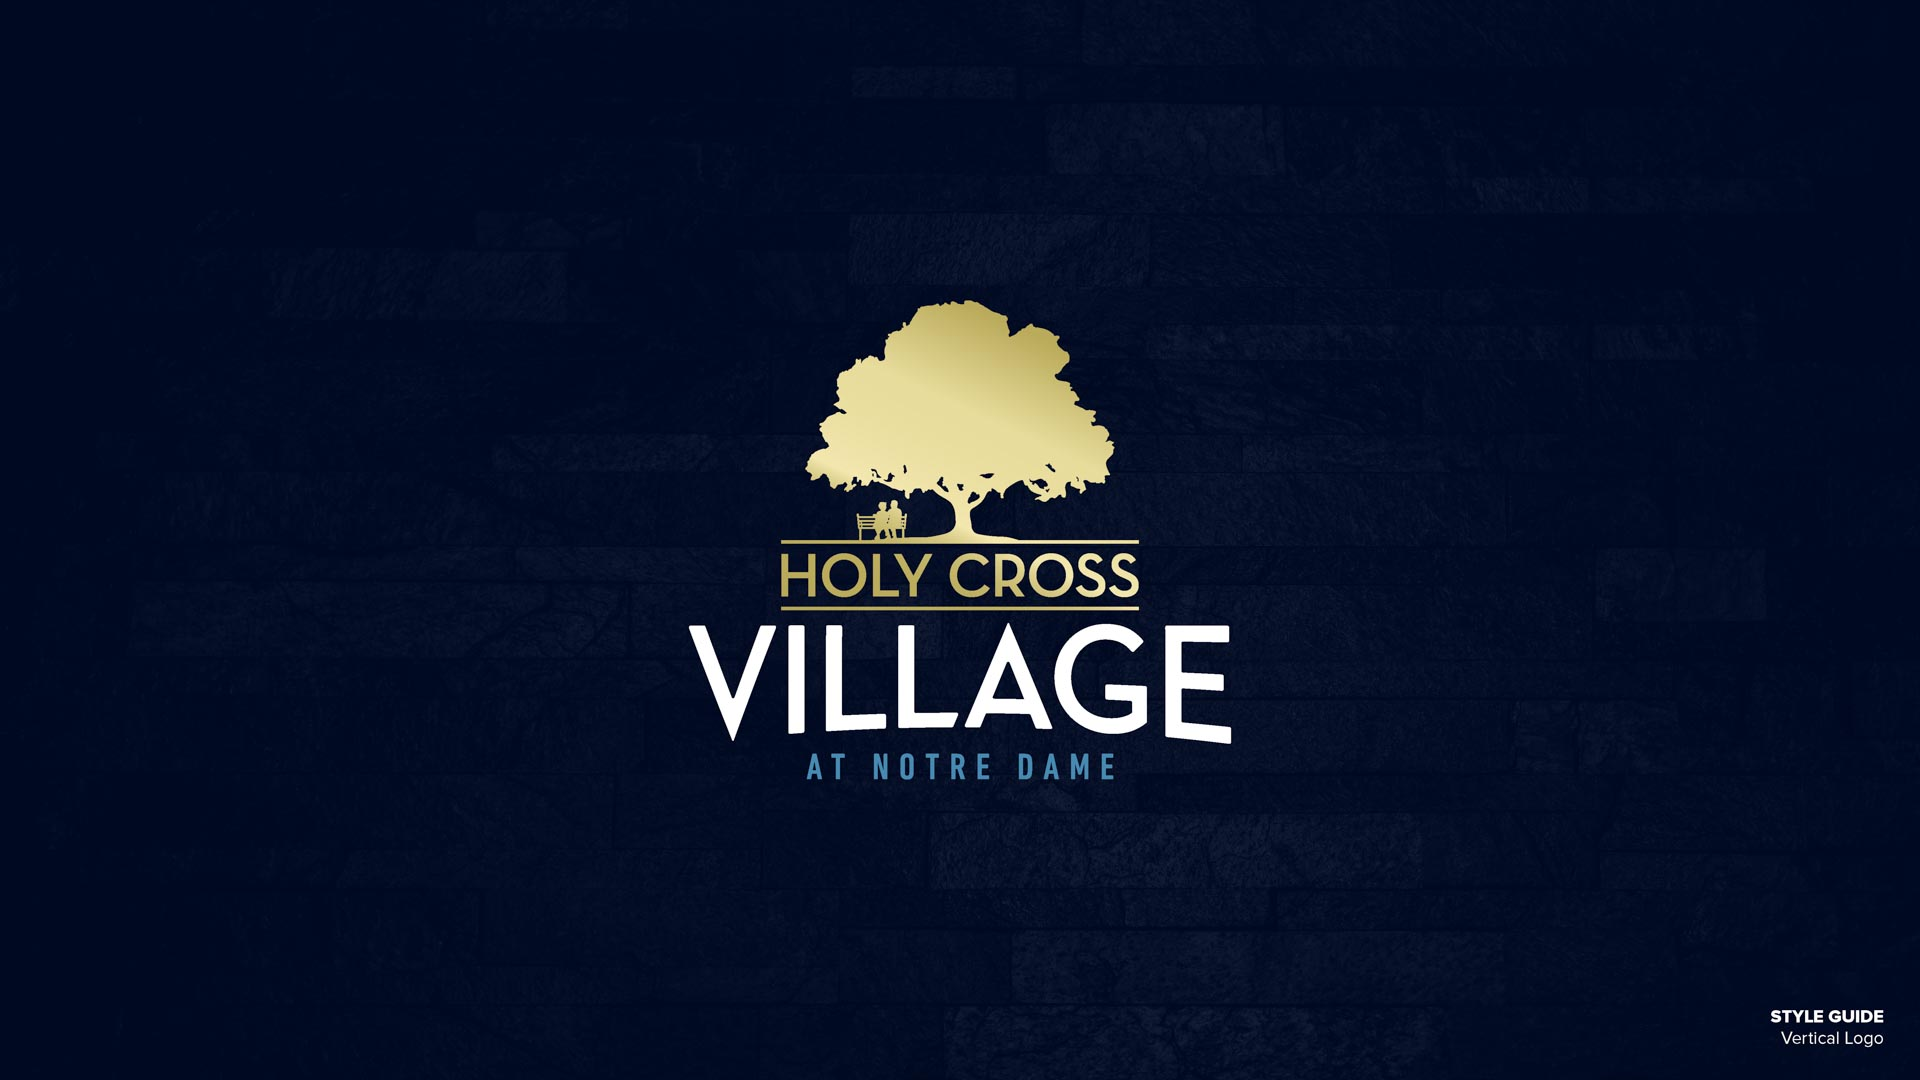 Holy Cross Village's Vertical Logo (Unofficial)